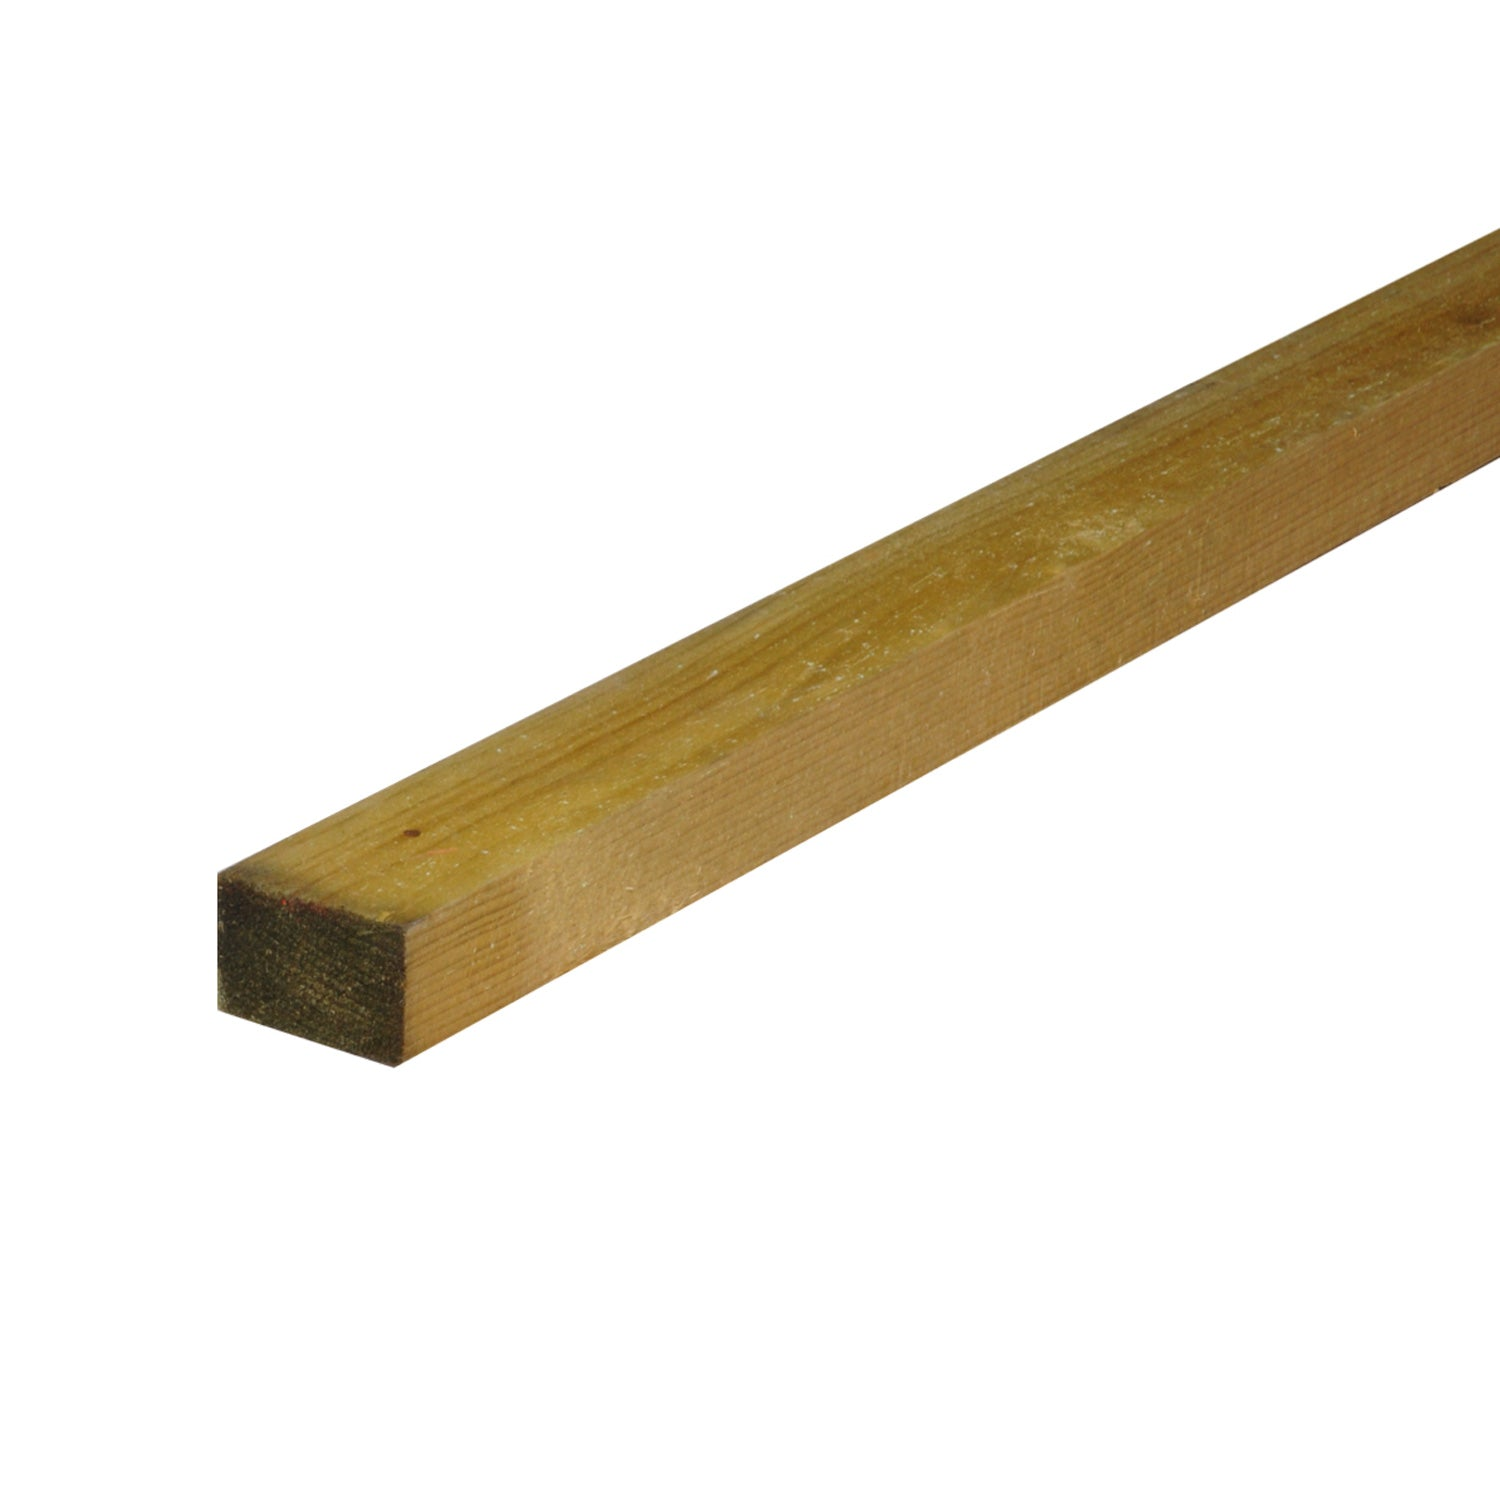 Treated Battens 25'' x 38'' 4.8m